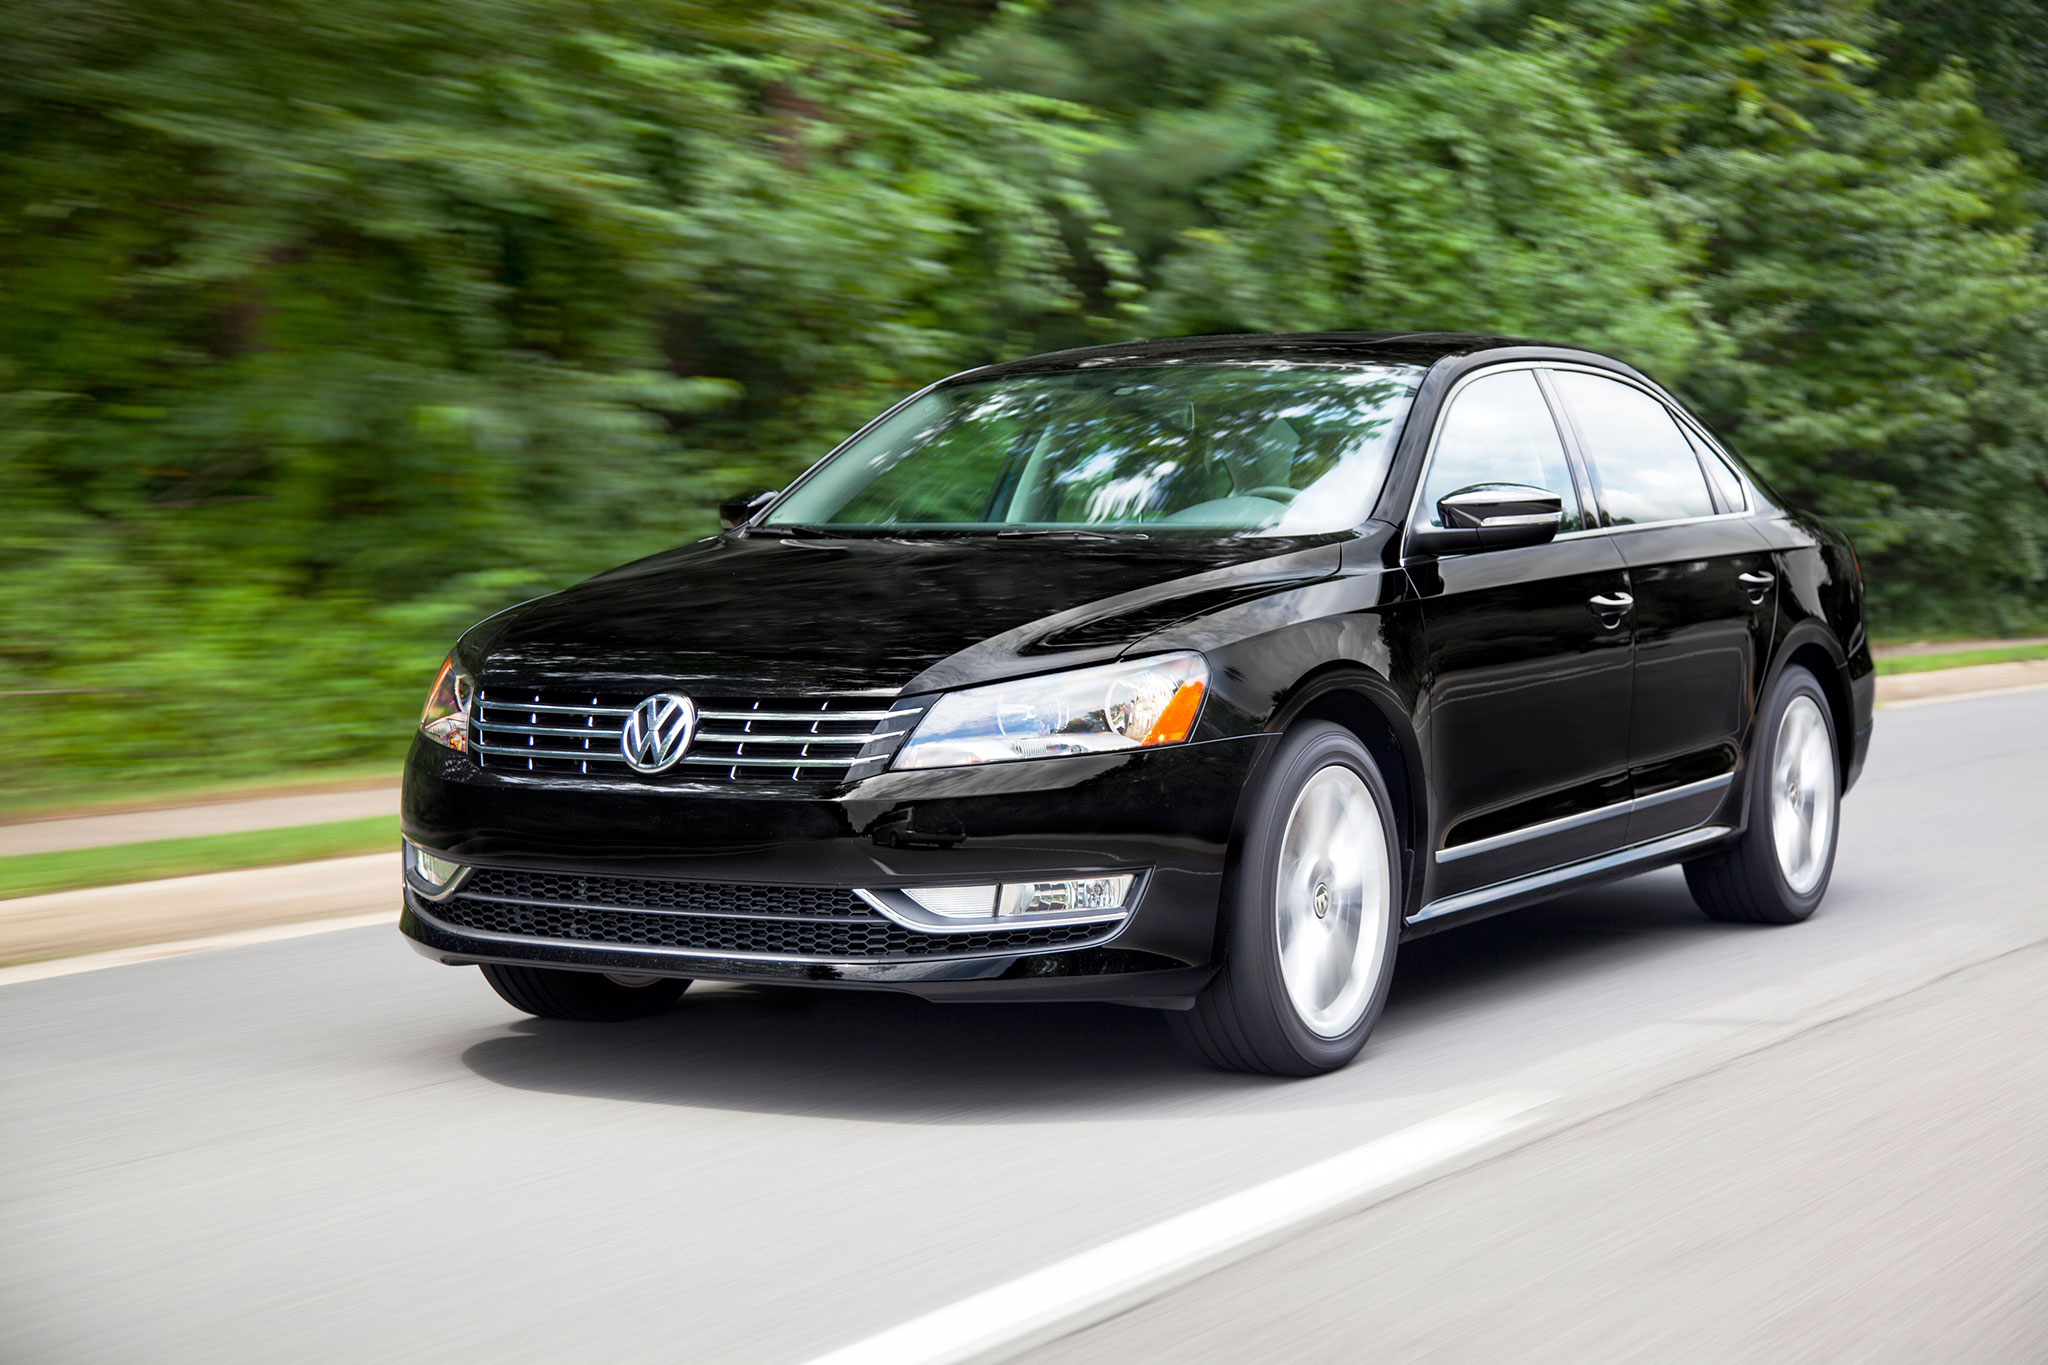 2014 vw passat boasts variety of engines and trim levels speedcraft vw. Black Bedroom Furniture Sets. Home Design Ideas